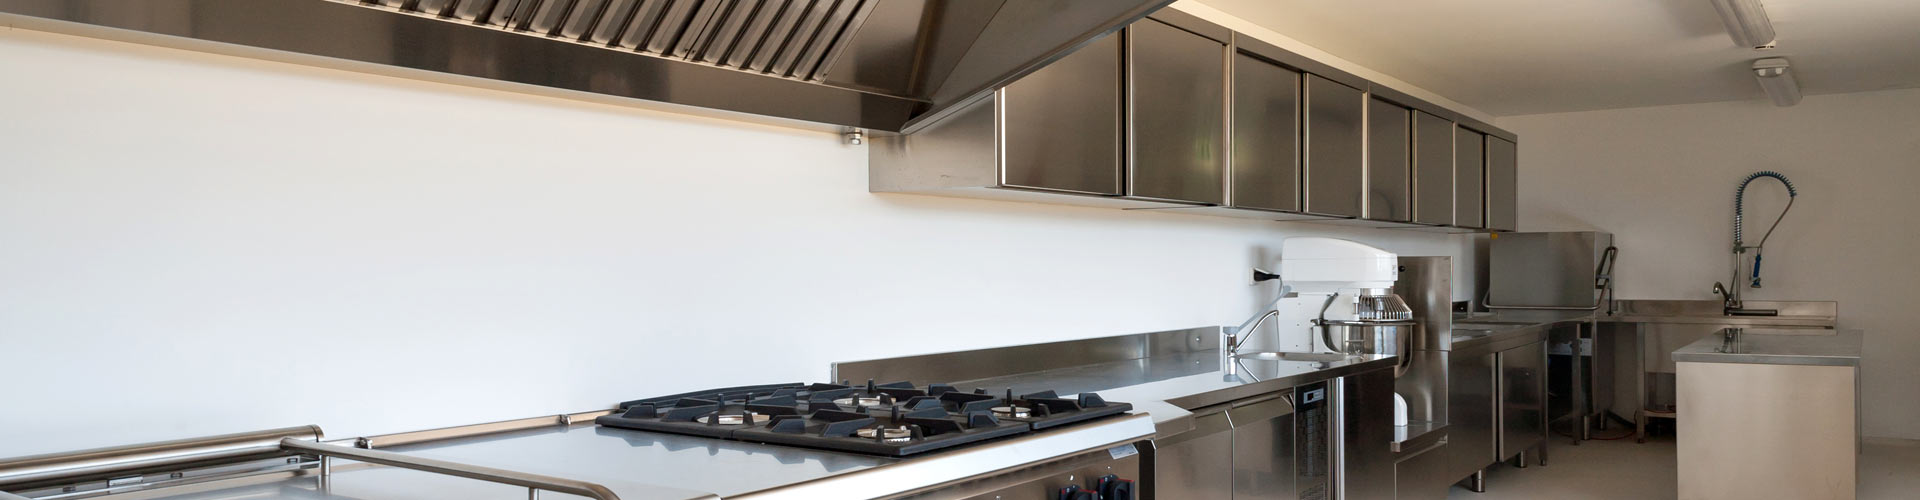 Commercial Kitchen Air Extraction Cleaning Services   Ventilation ...